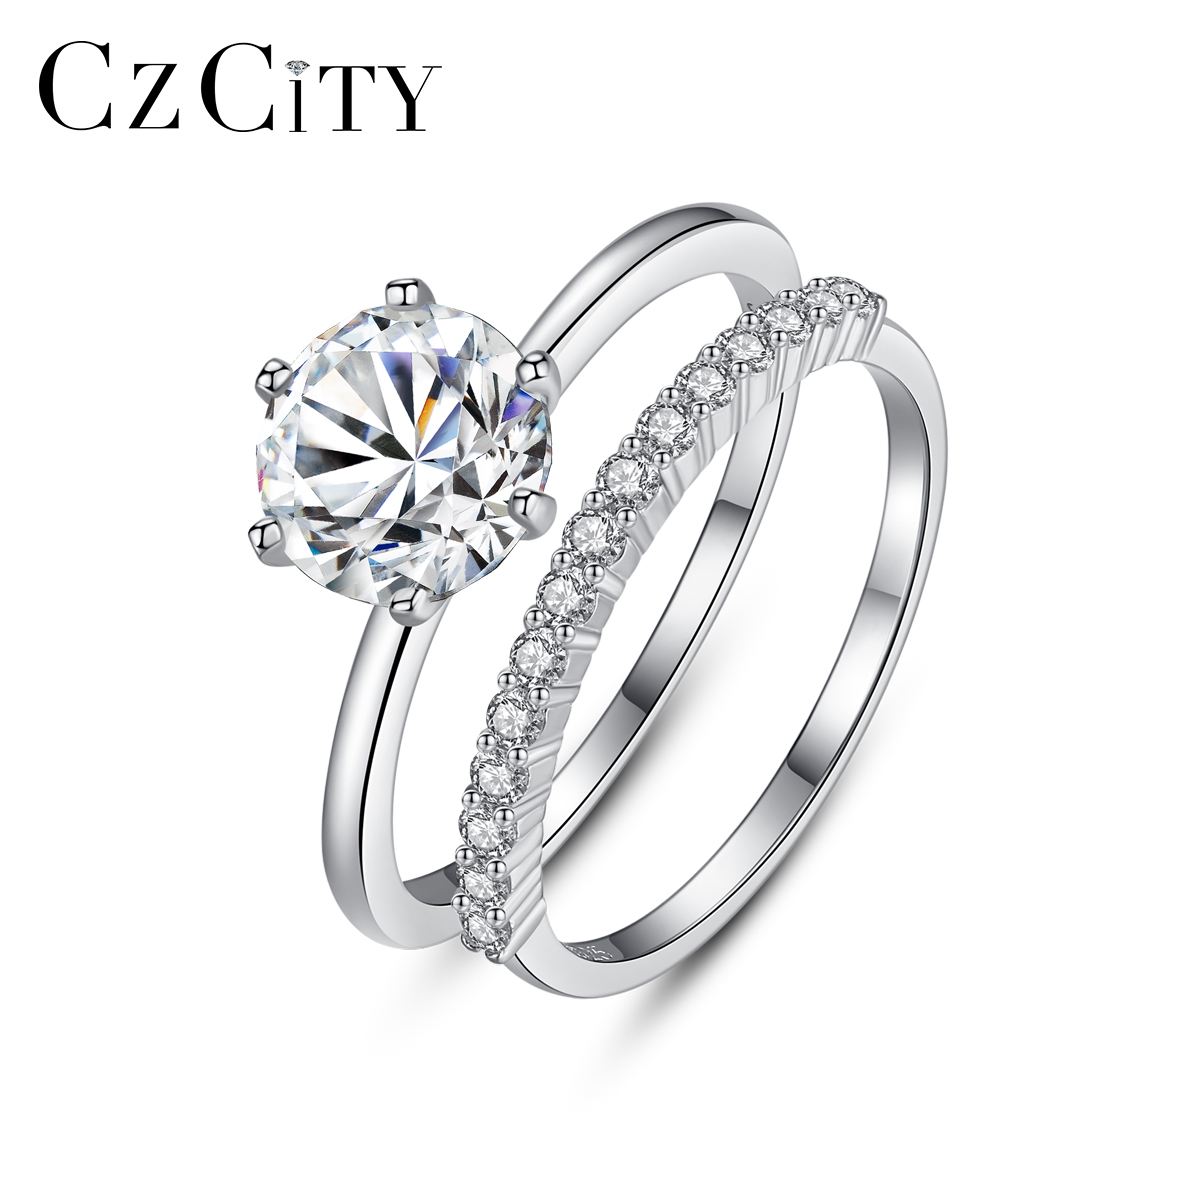 CZCITY Personalized 925 Sterling Silver Stacked Engagement Finger Rings Women Girls Wedding Party Micro CZ Fine Jewelry SR0361